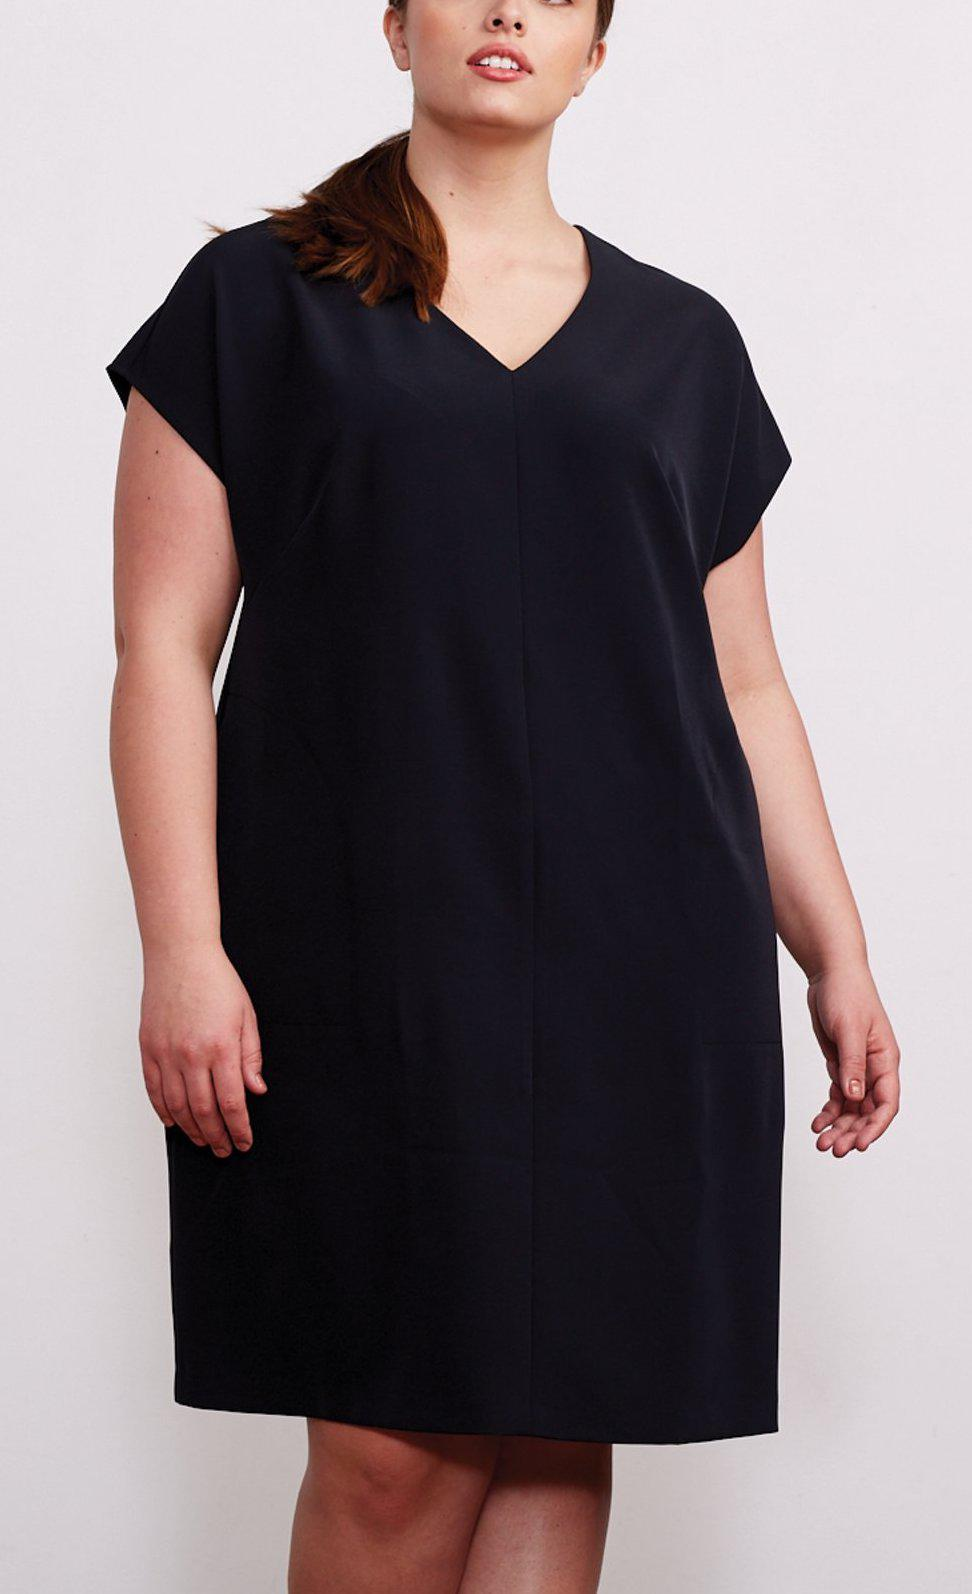 Brass high end designer plus-size women's clothing rental